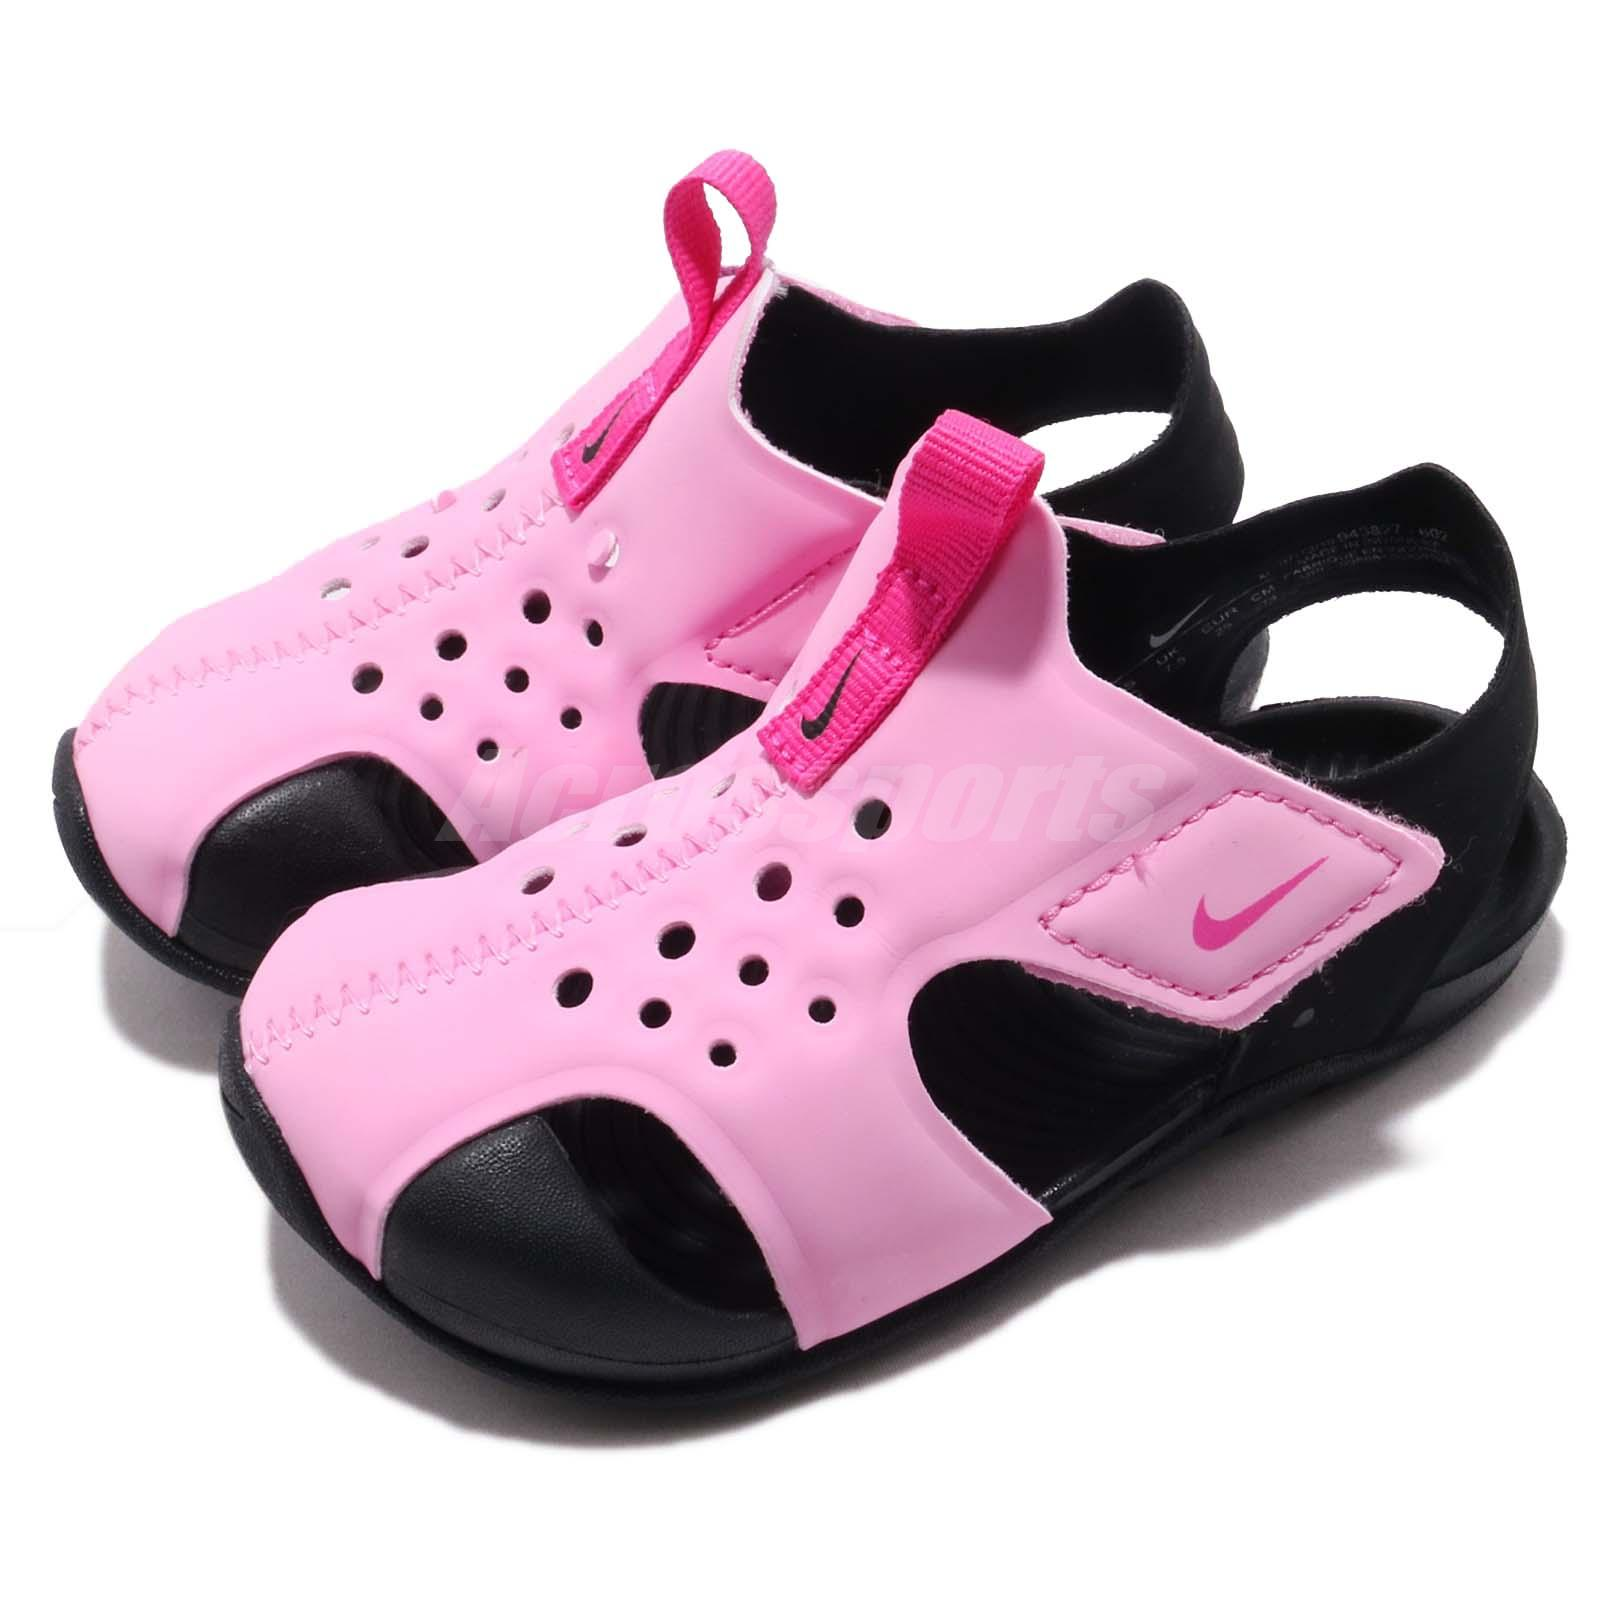 02c9e0c9607c Details about Nike Sunray Protect 2 TD Psychic Pink Toddler Infant Sandals  Shoes 943827-602